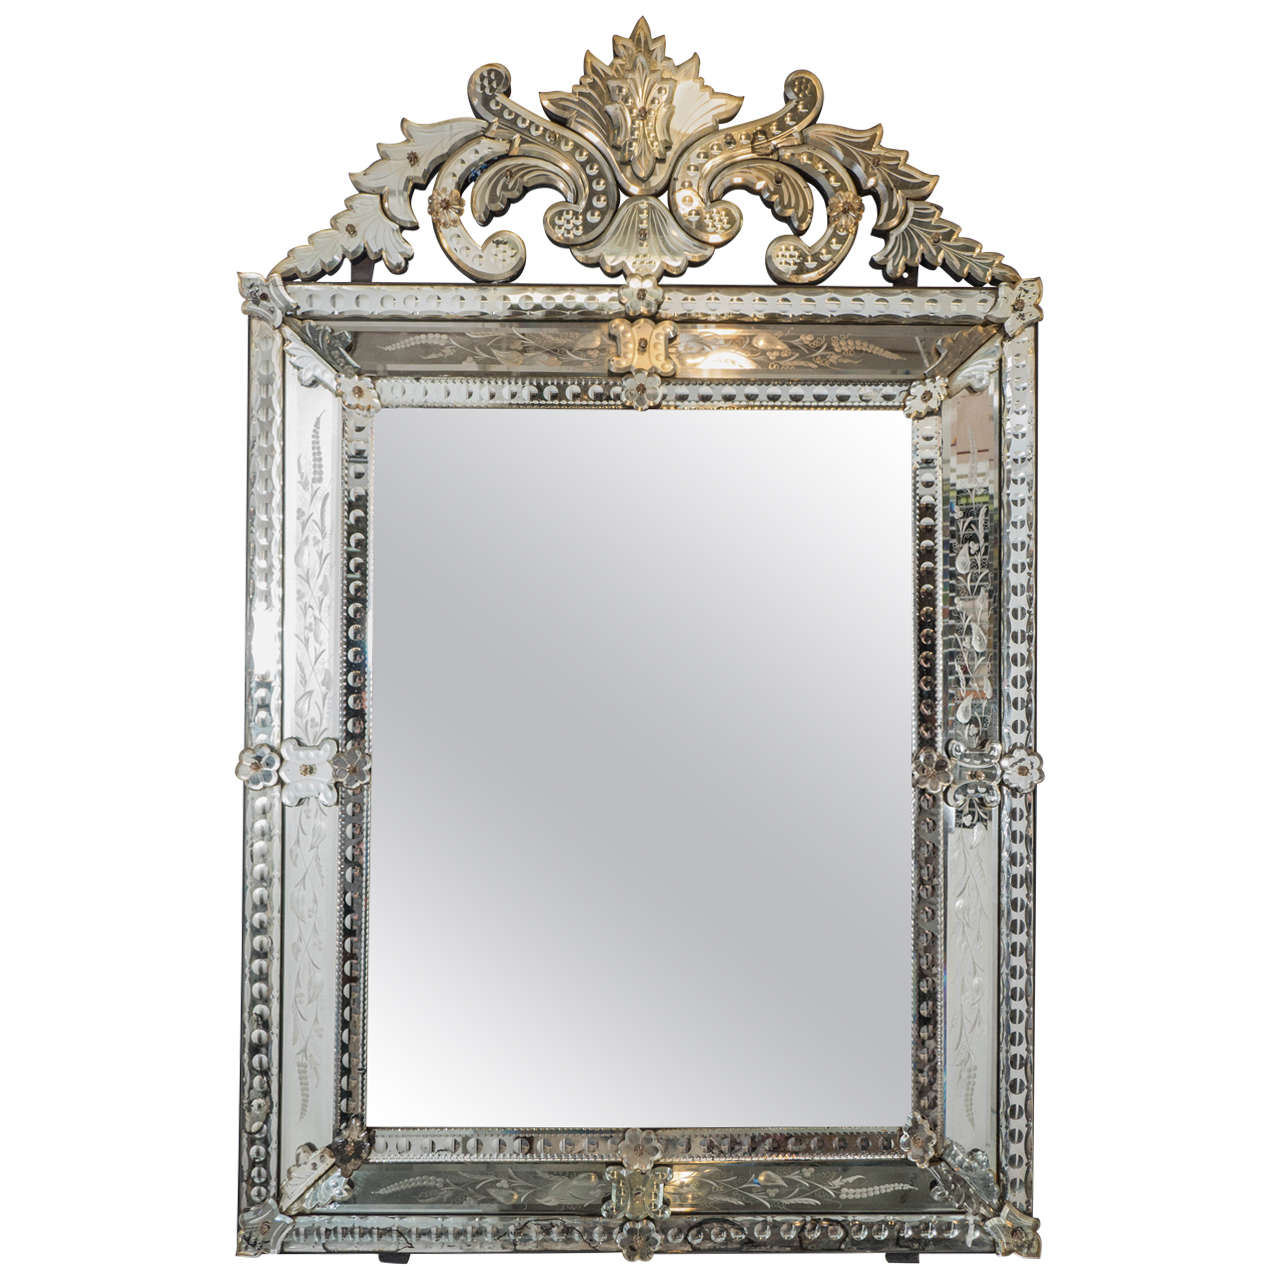 Vintage Venetian Beveled Wall Mirror with Reverse Etched Floral ...